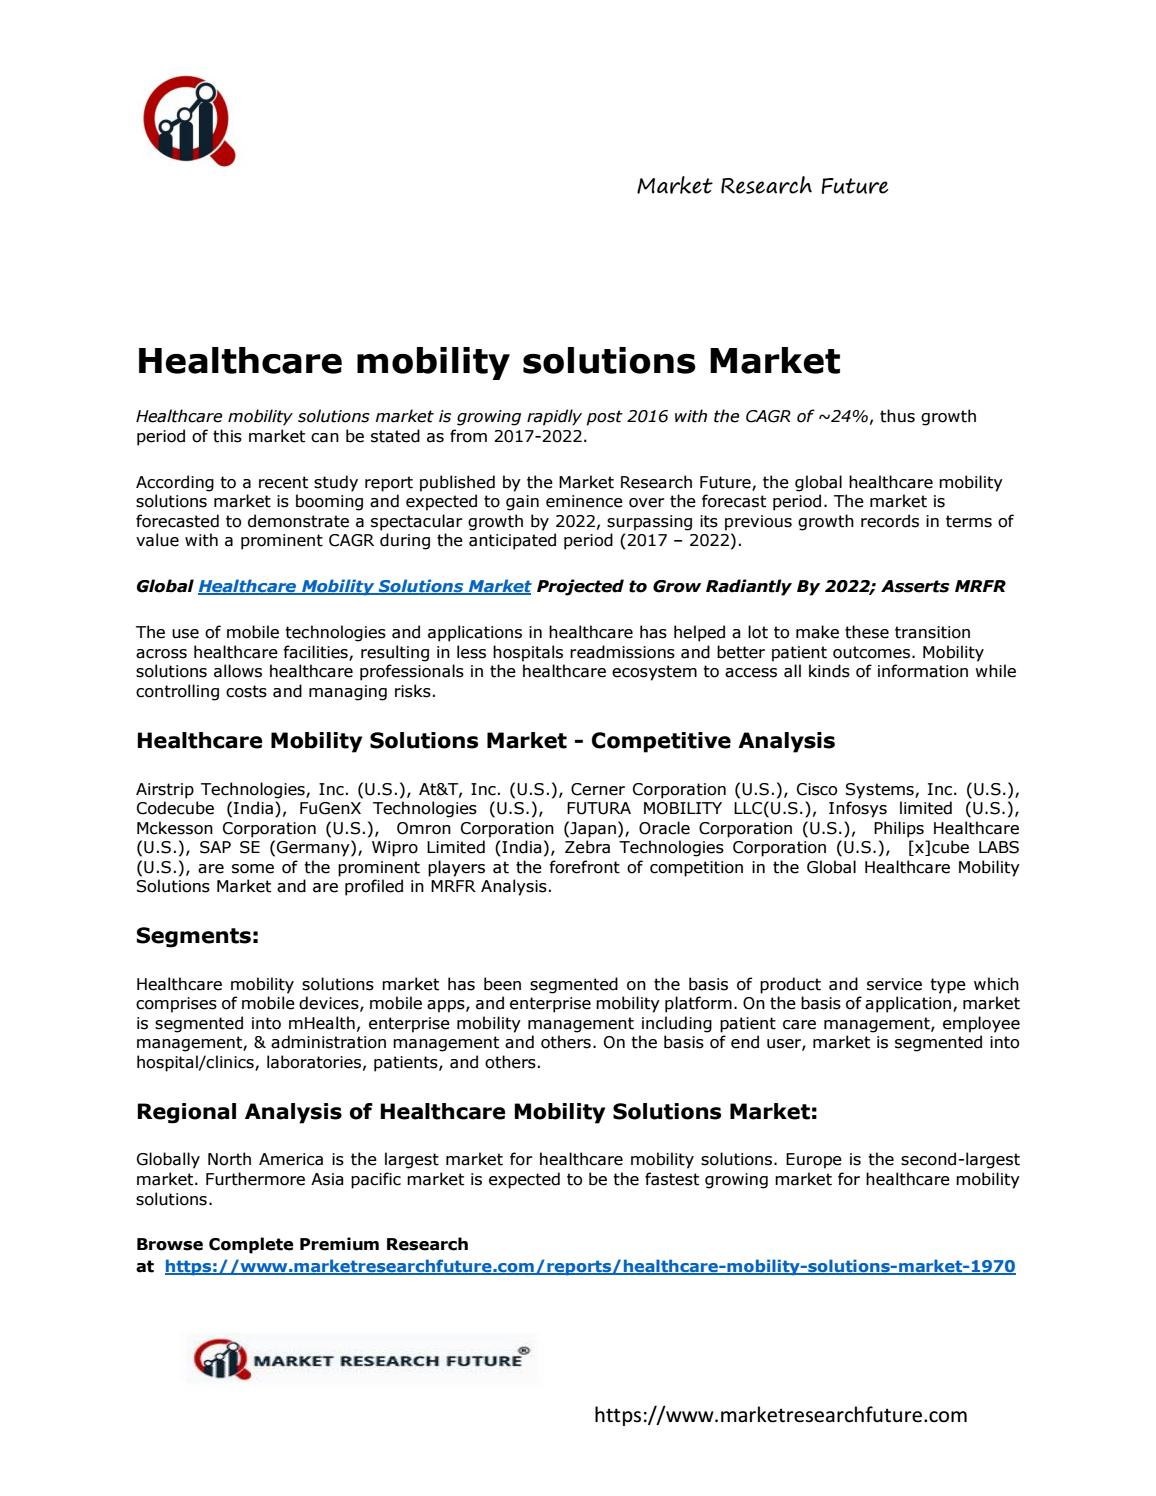 Healthcare Mobility Solutions Market Research Report